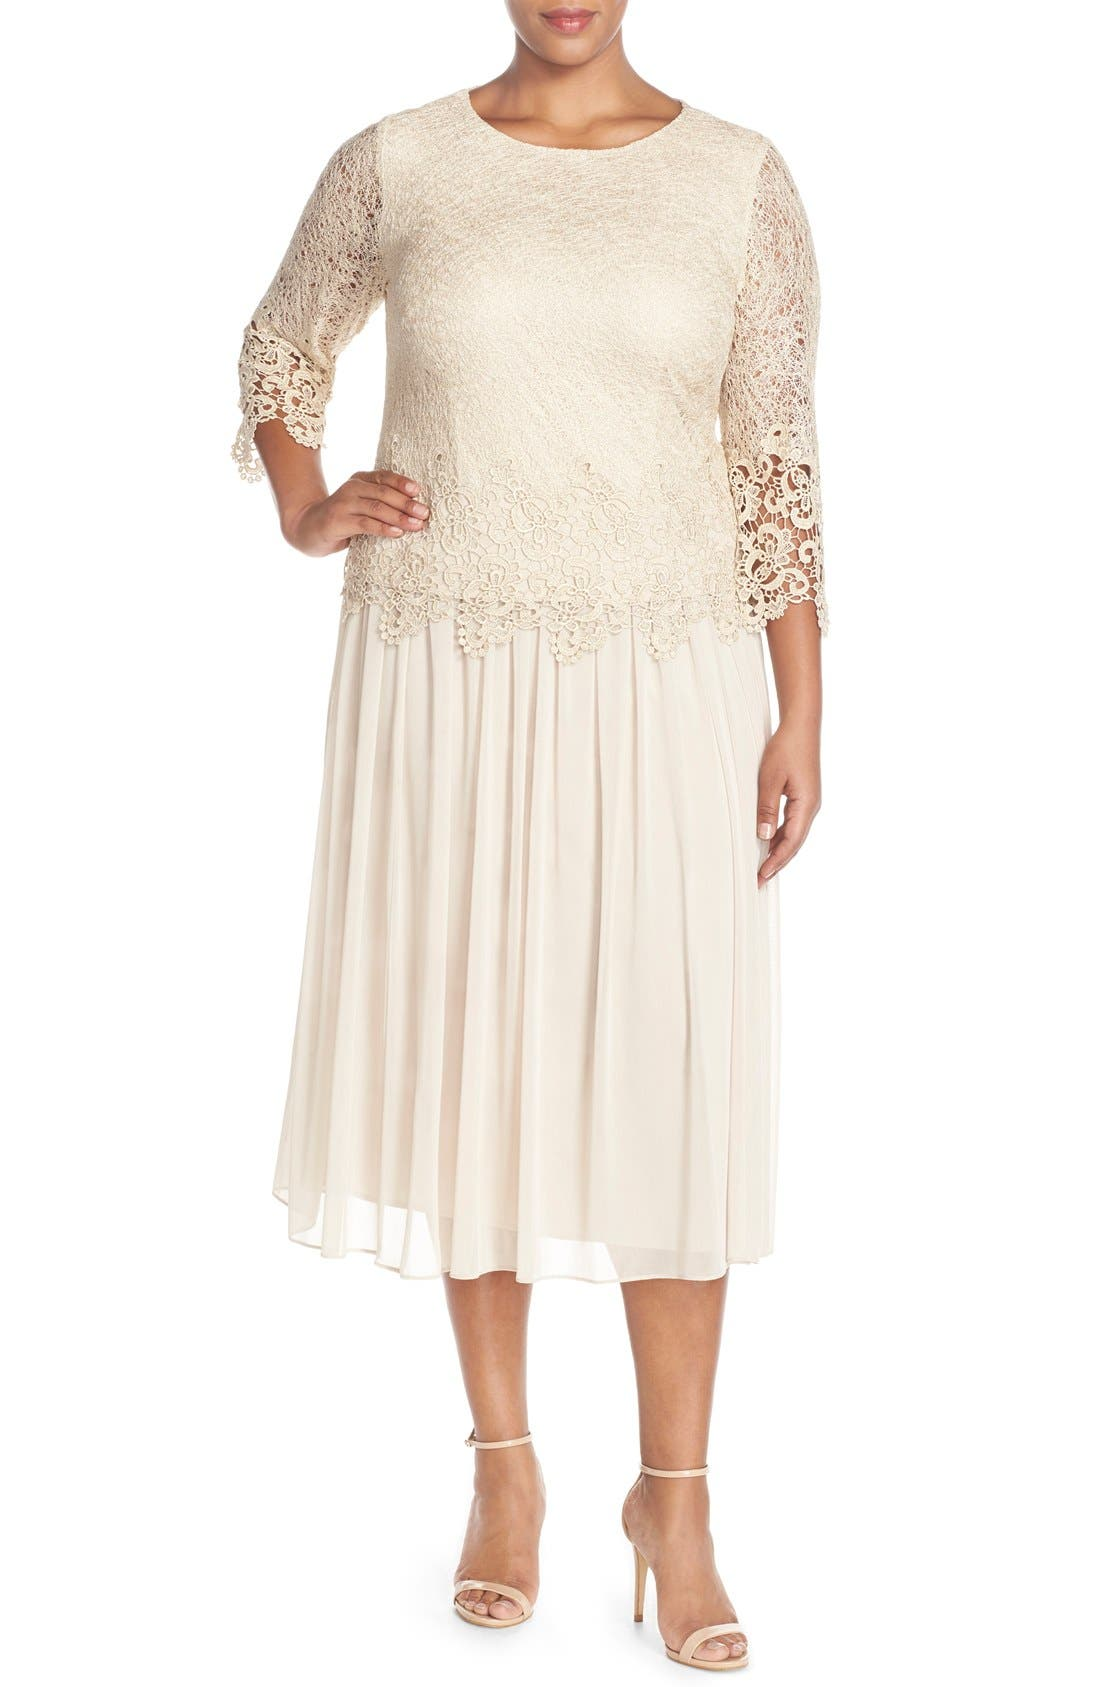 Alex Evenings Lace & Chiffon Tea Length Dress (Plus Size)